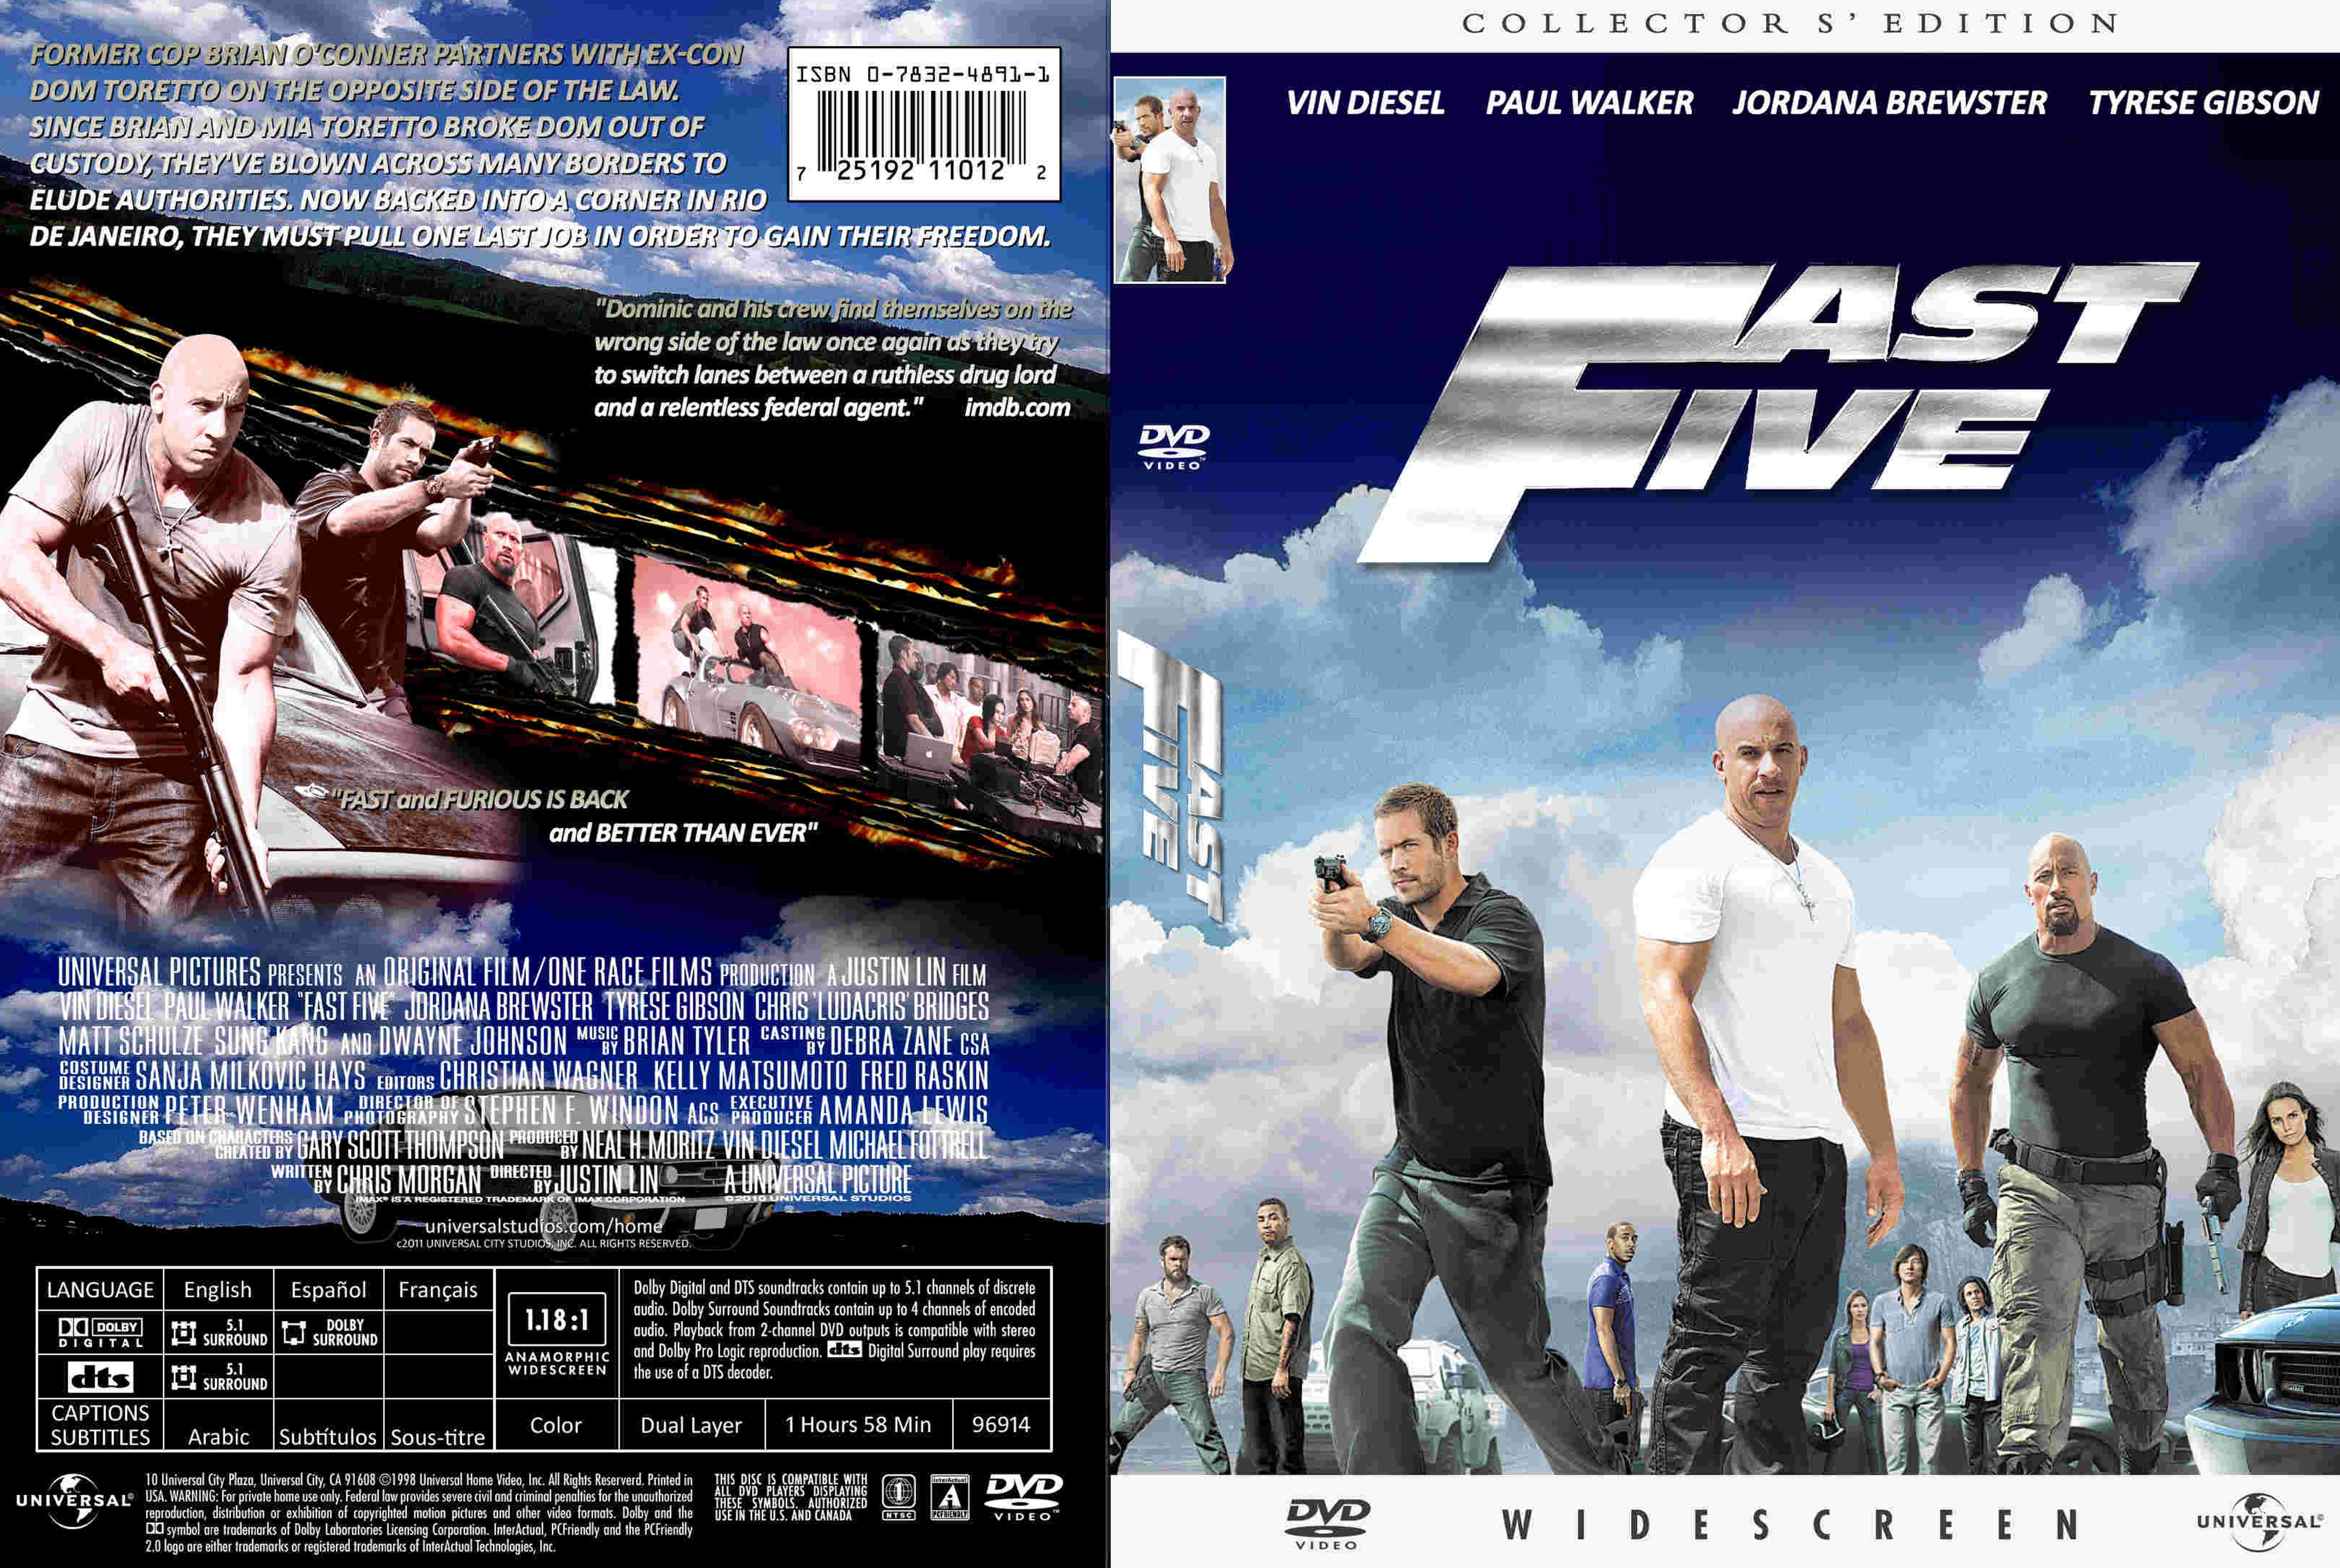 The fast and the furious 7 dvd 3gp movie download